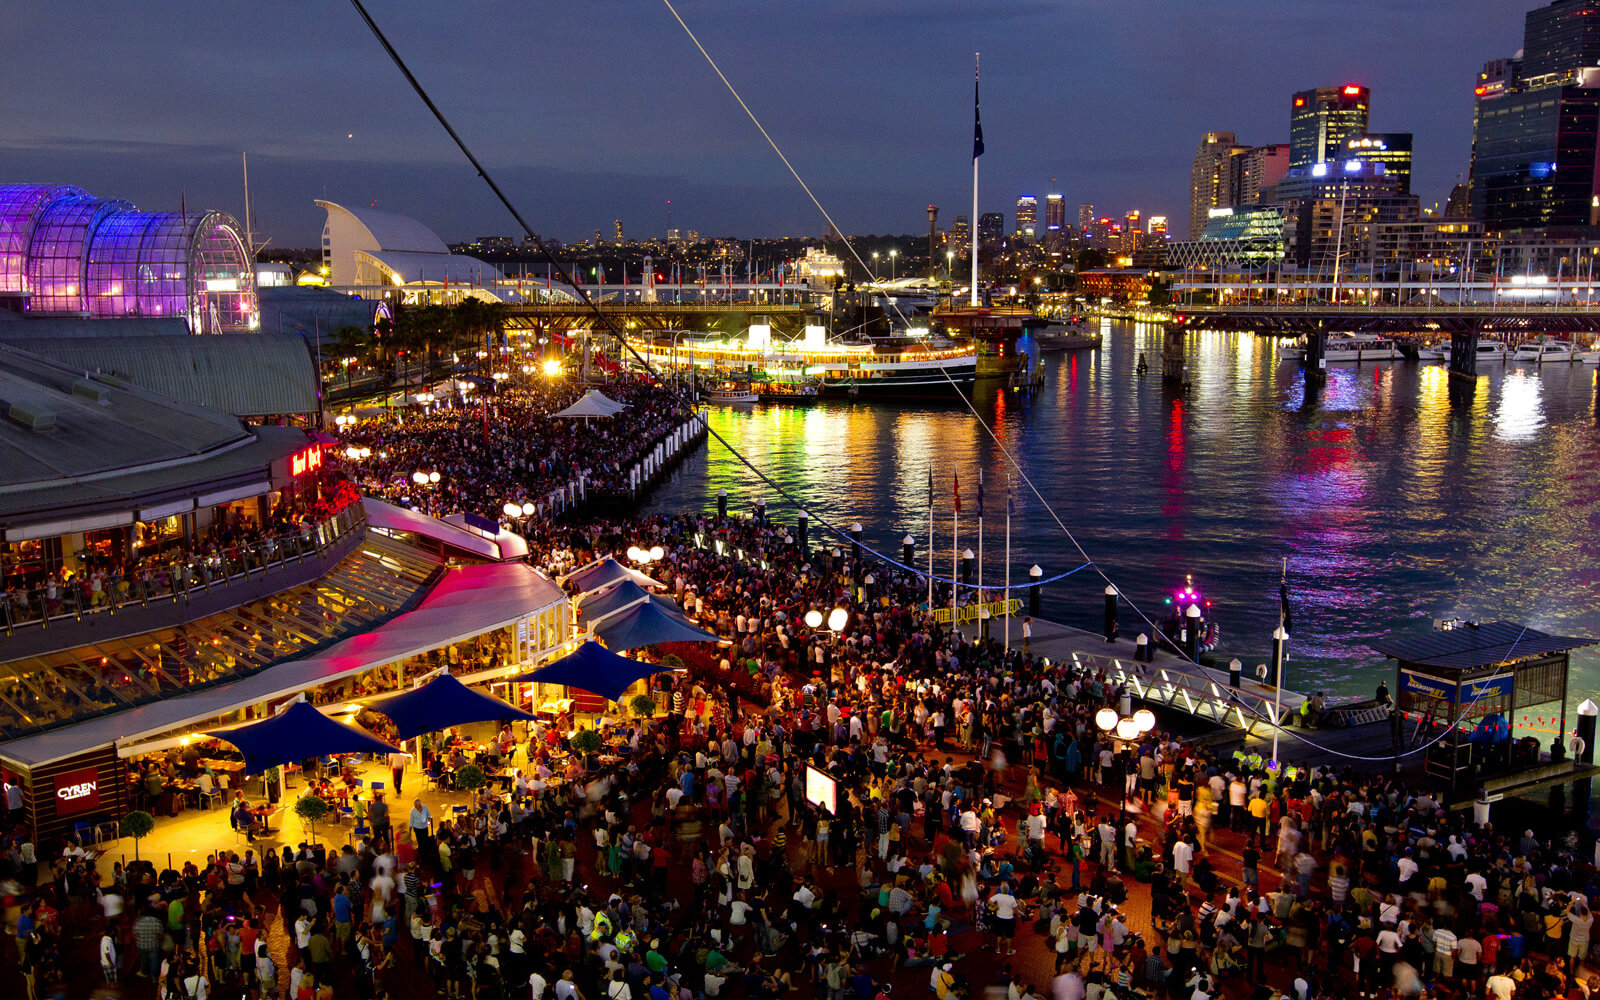 Australia Day im Darling Harbour in Sydney